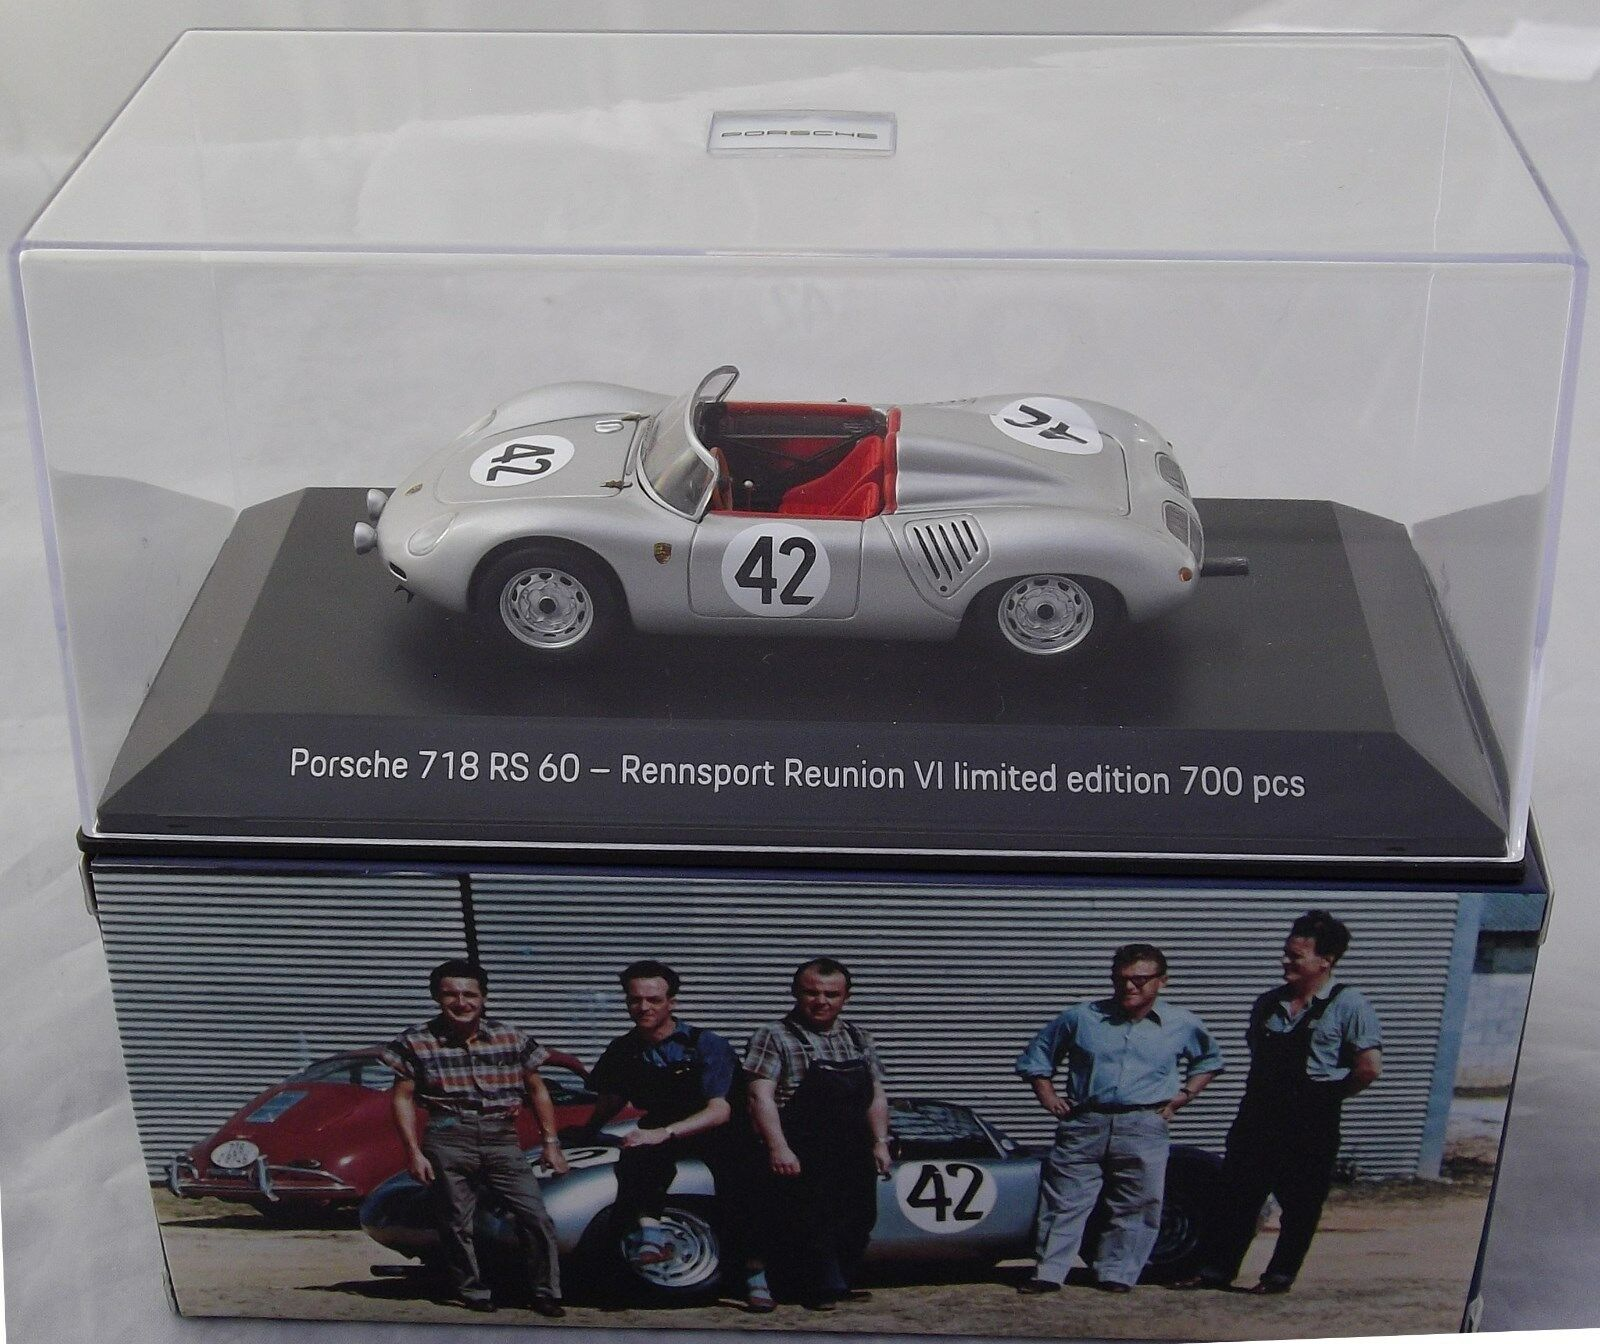 Porsche 718 RS 60 Reunion VI 2018 1 43 Limited 700 PCS Minichamps Spark NEW